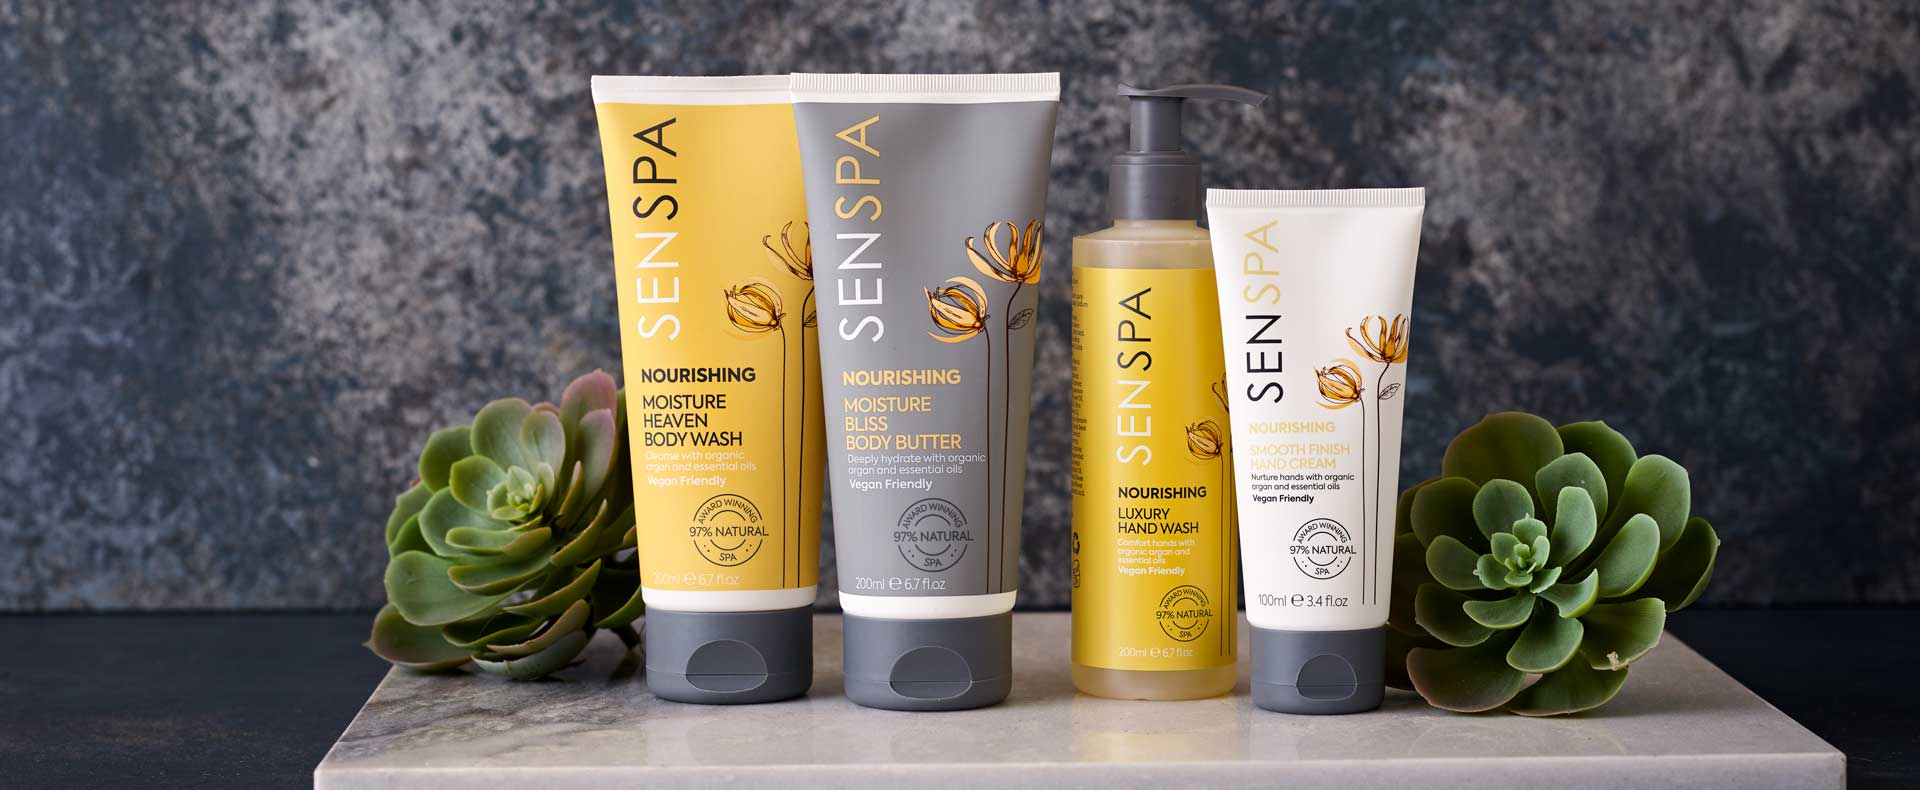 SenSpa Nourishing Range | SenSpa at Careys Manor